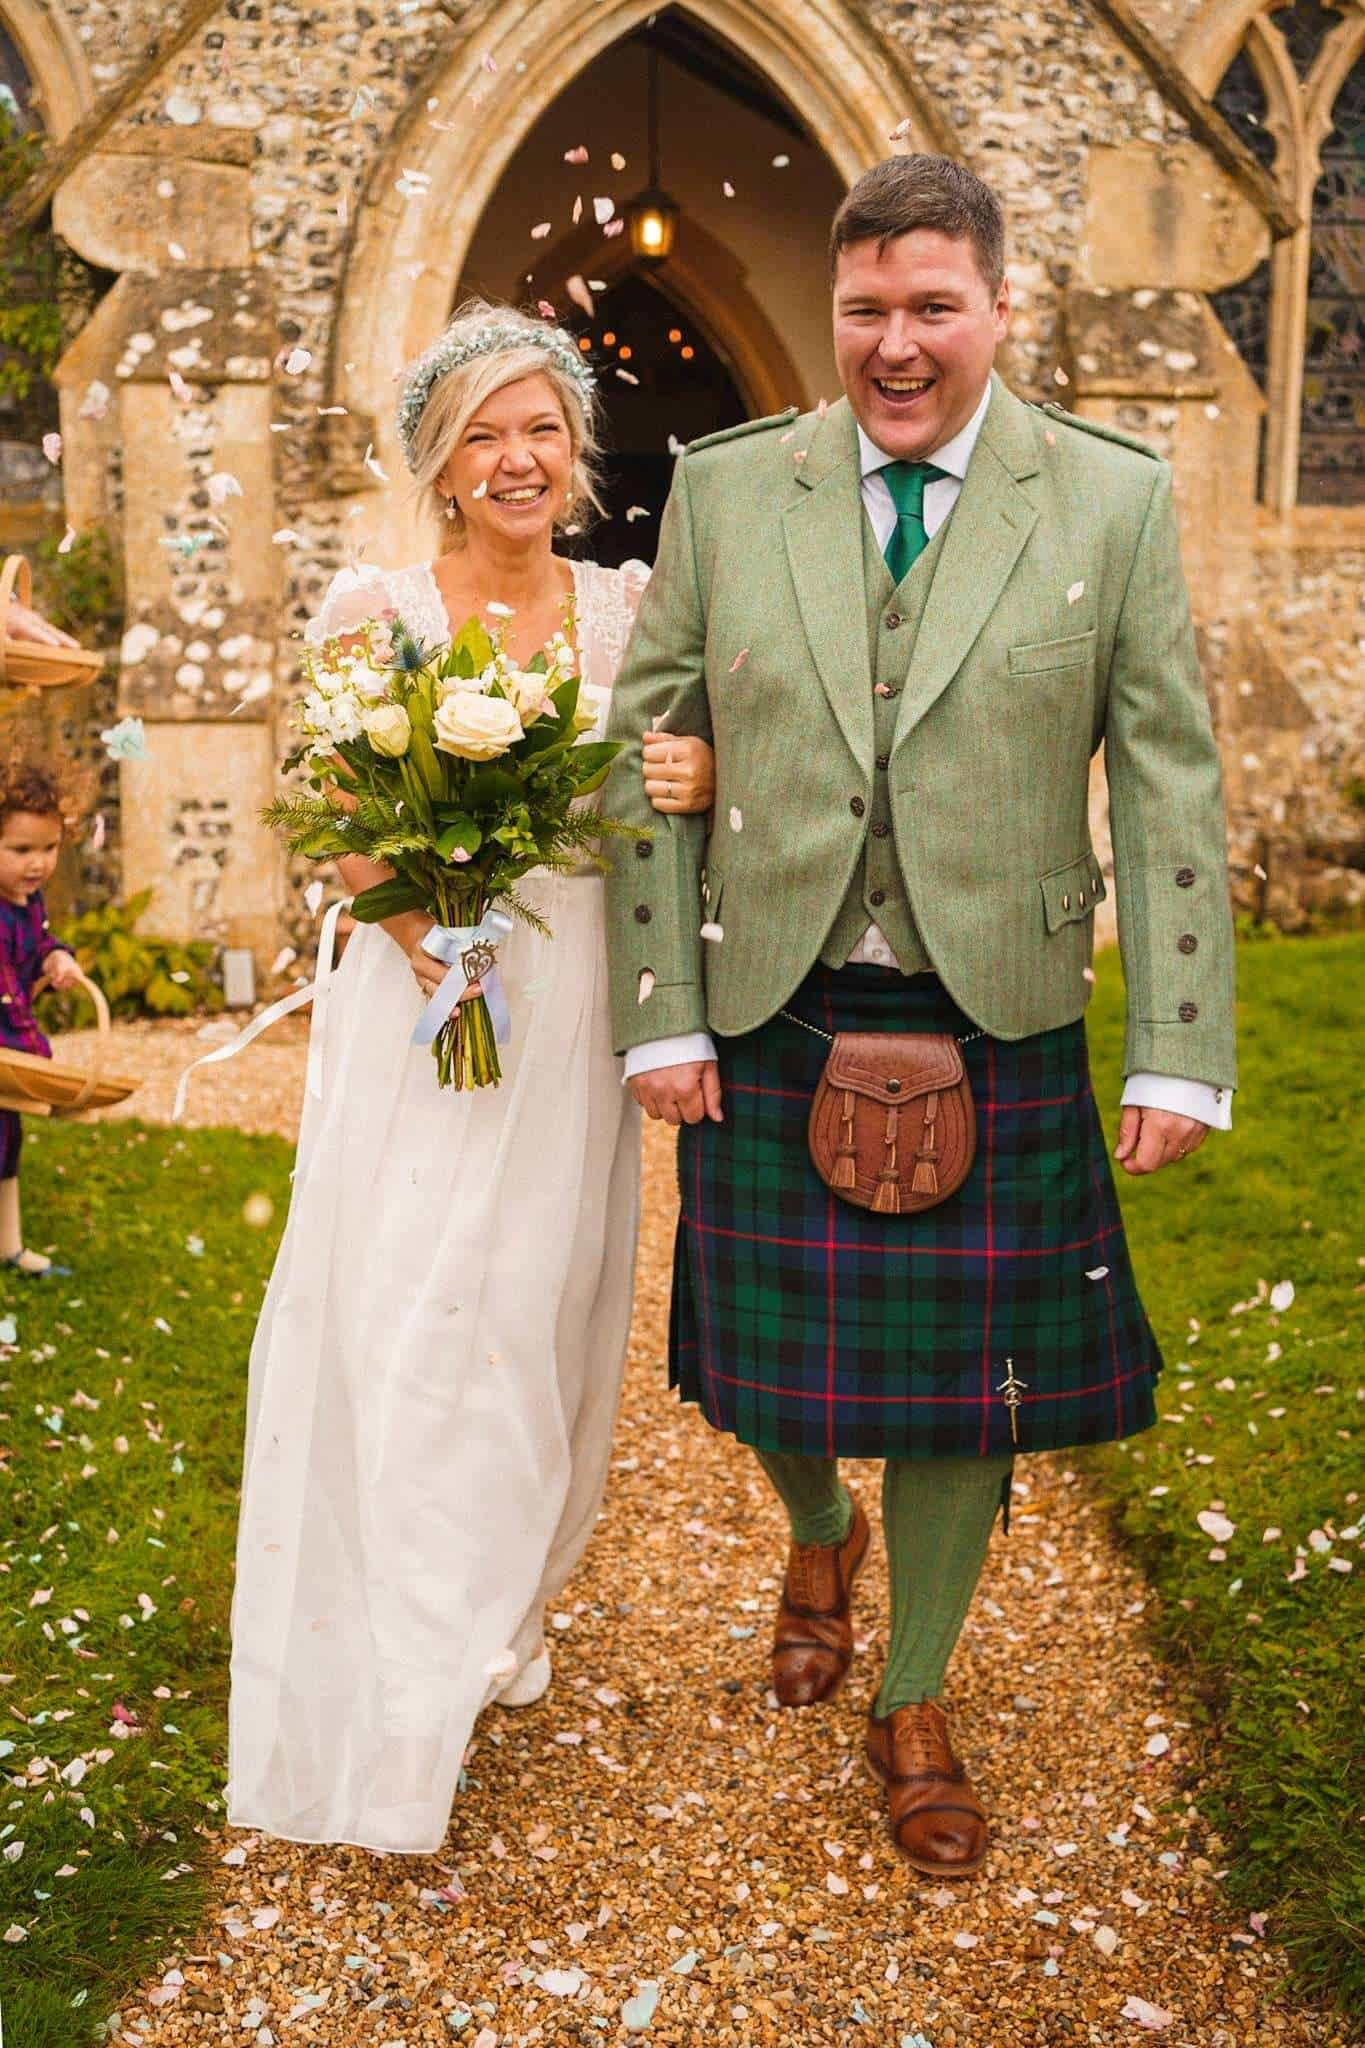 A couple walk out of church after getting married and have confetti thrown over them